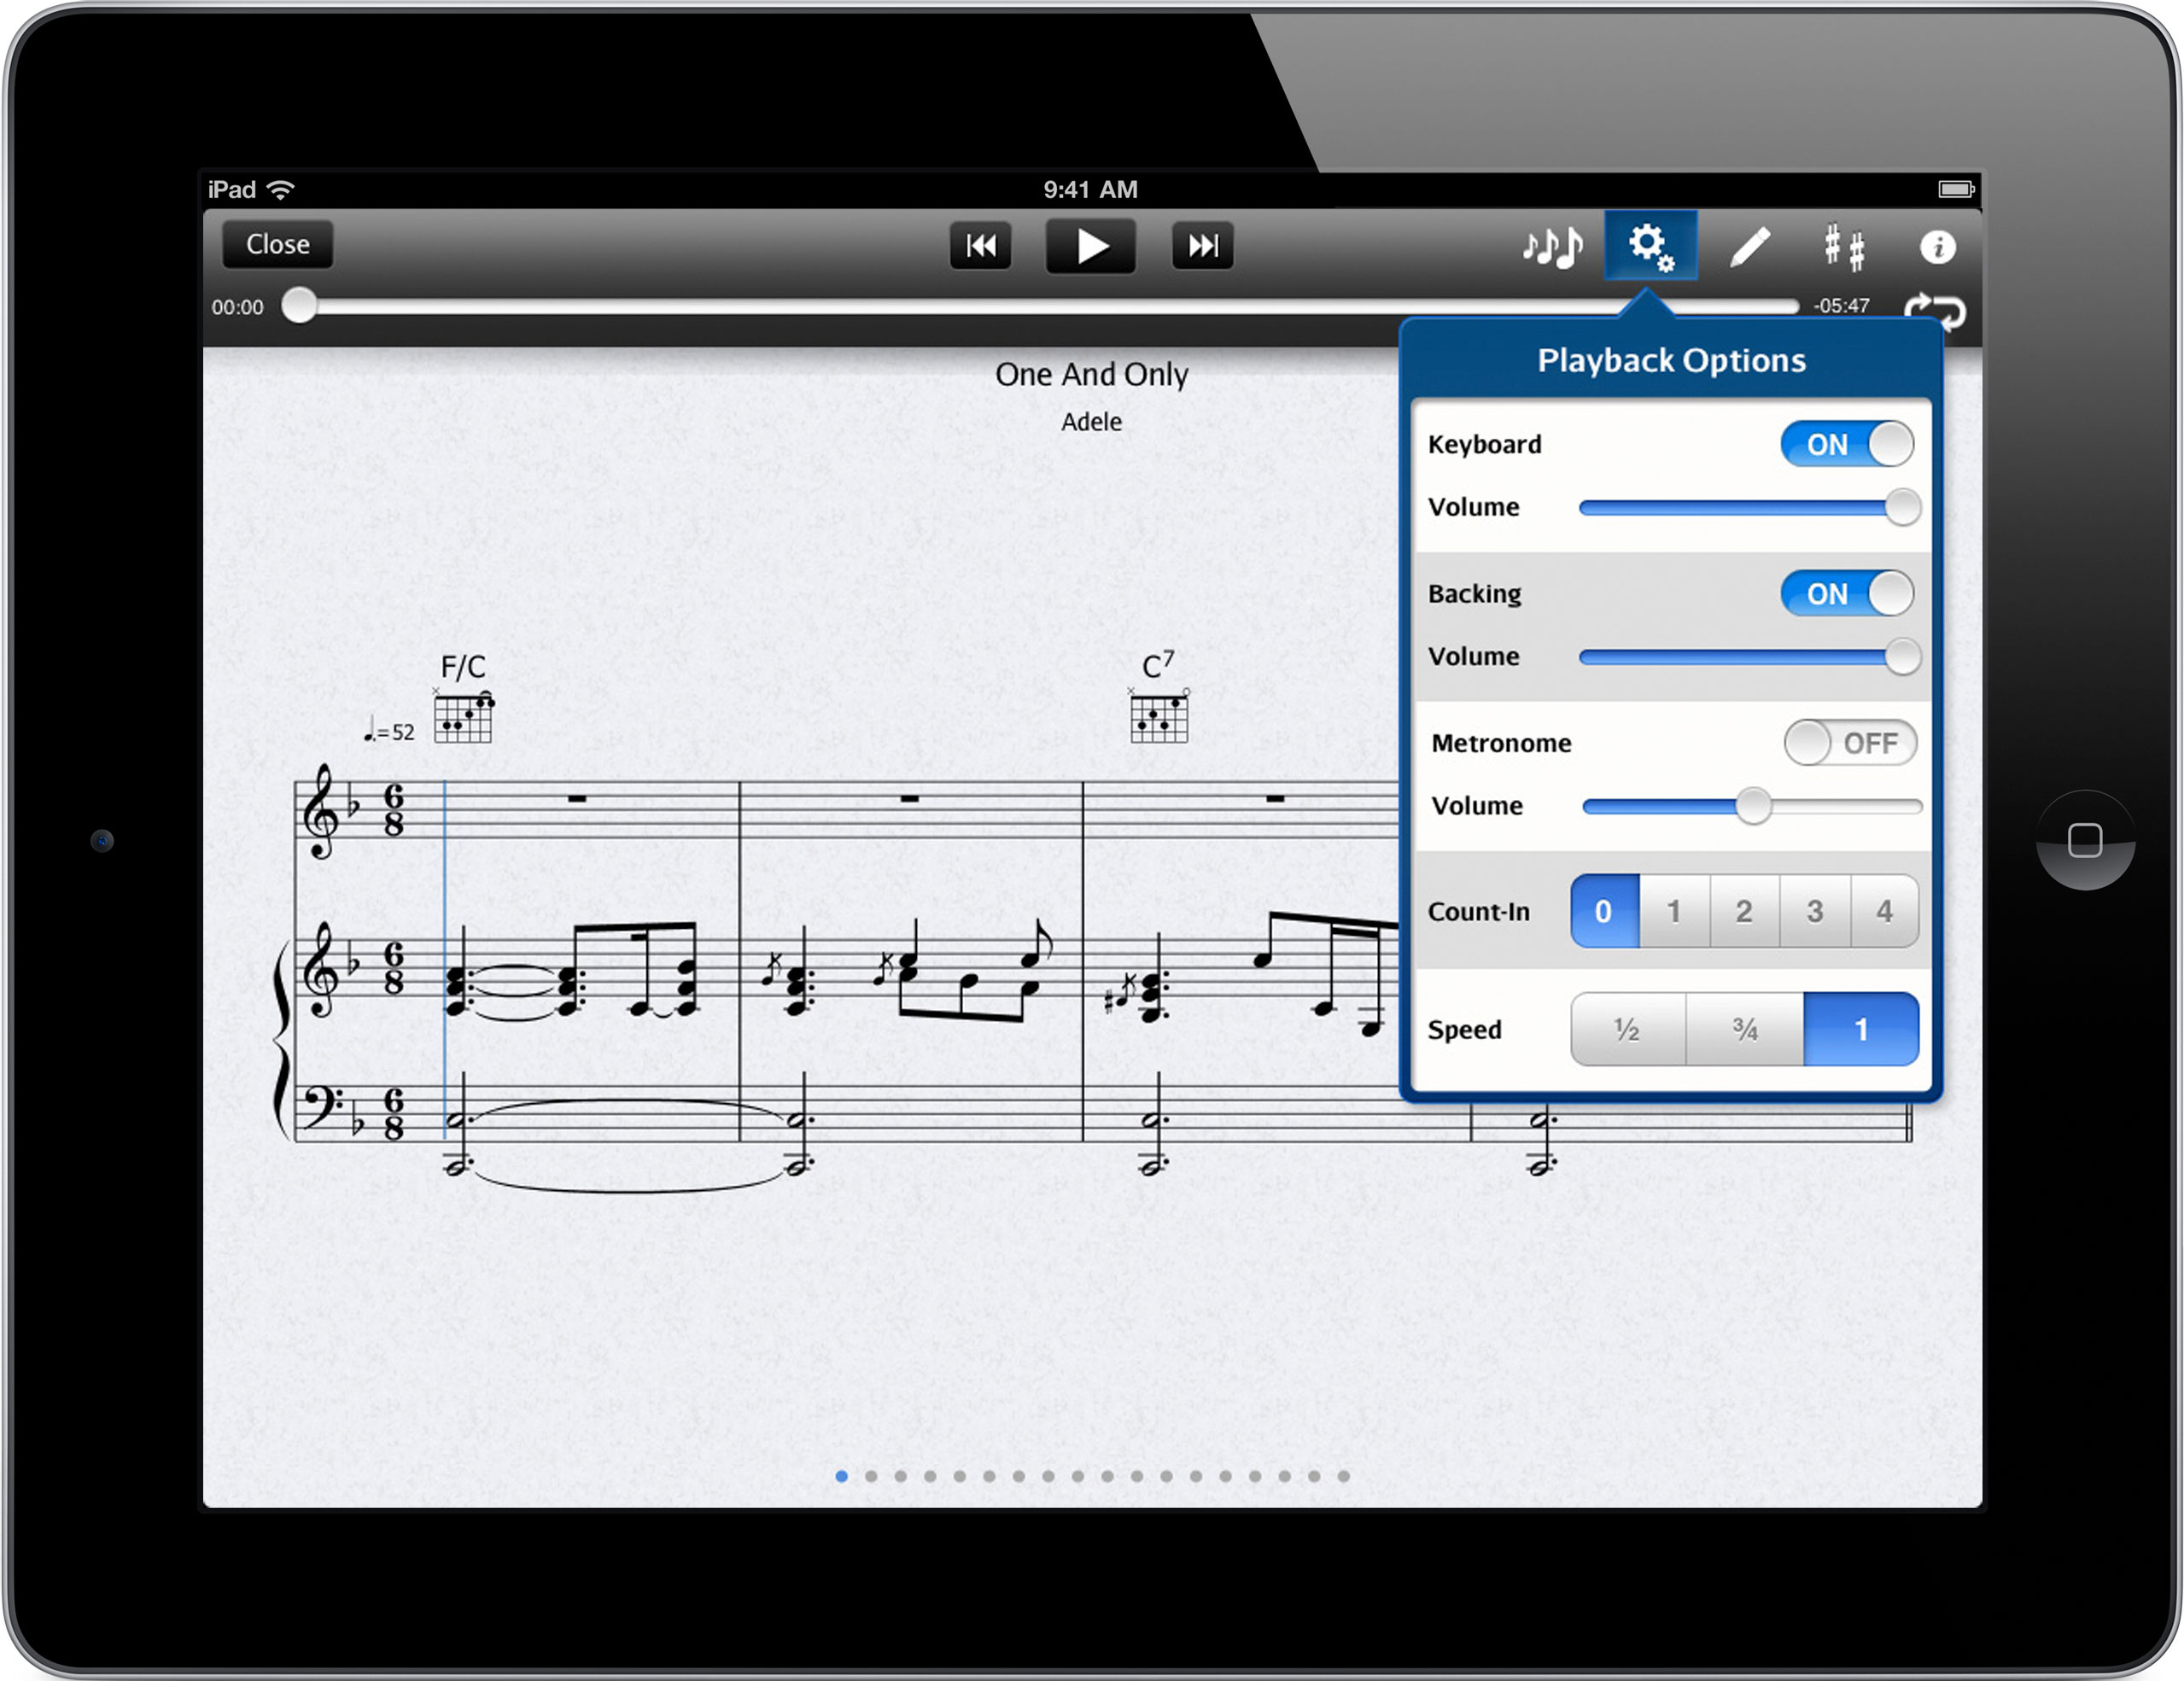 Playback control including keyboard/backing part / metronome on/off, and tempo control